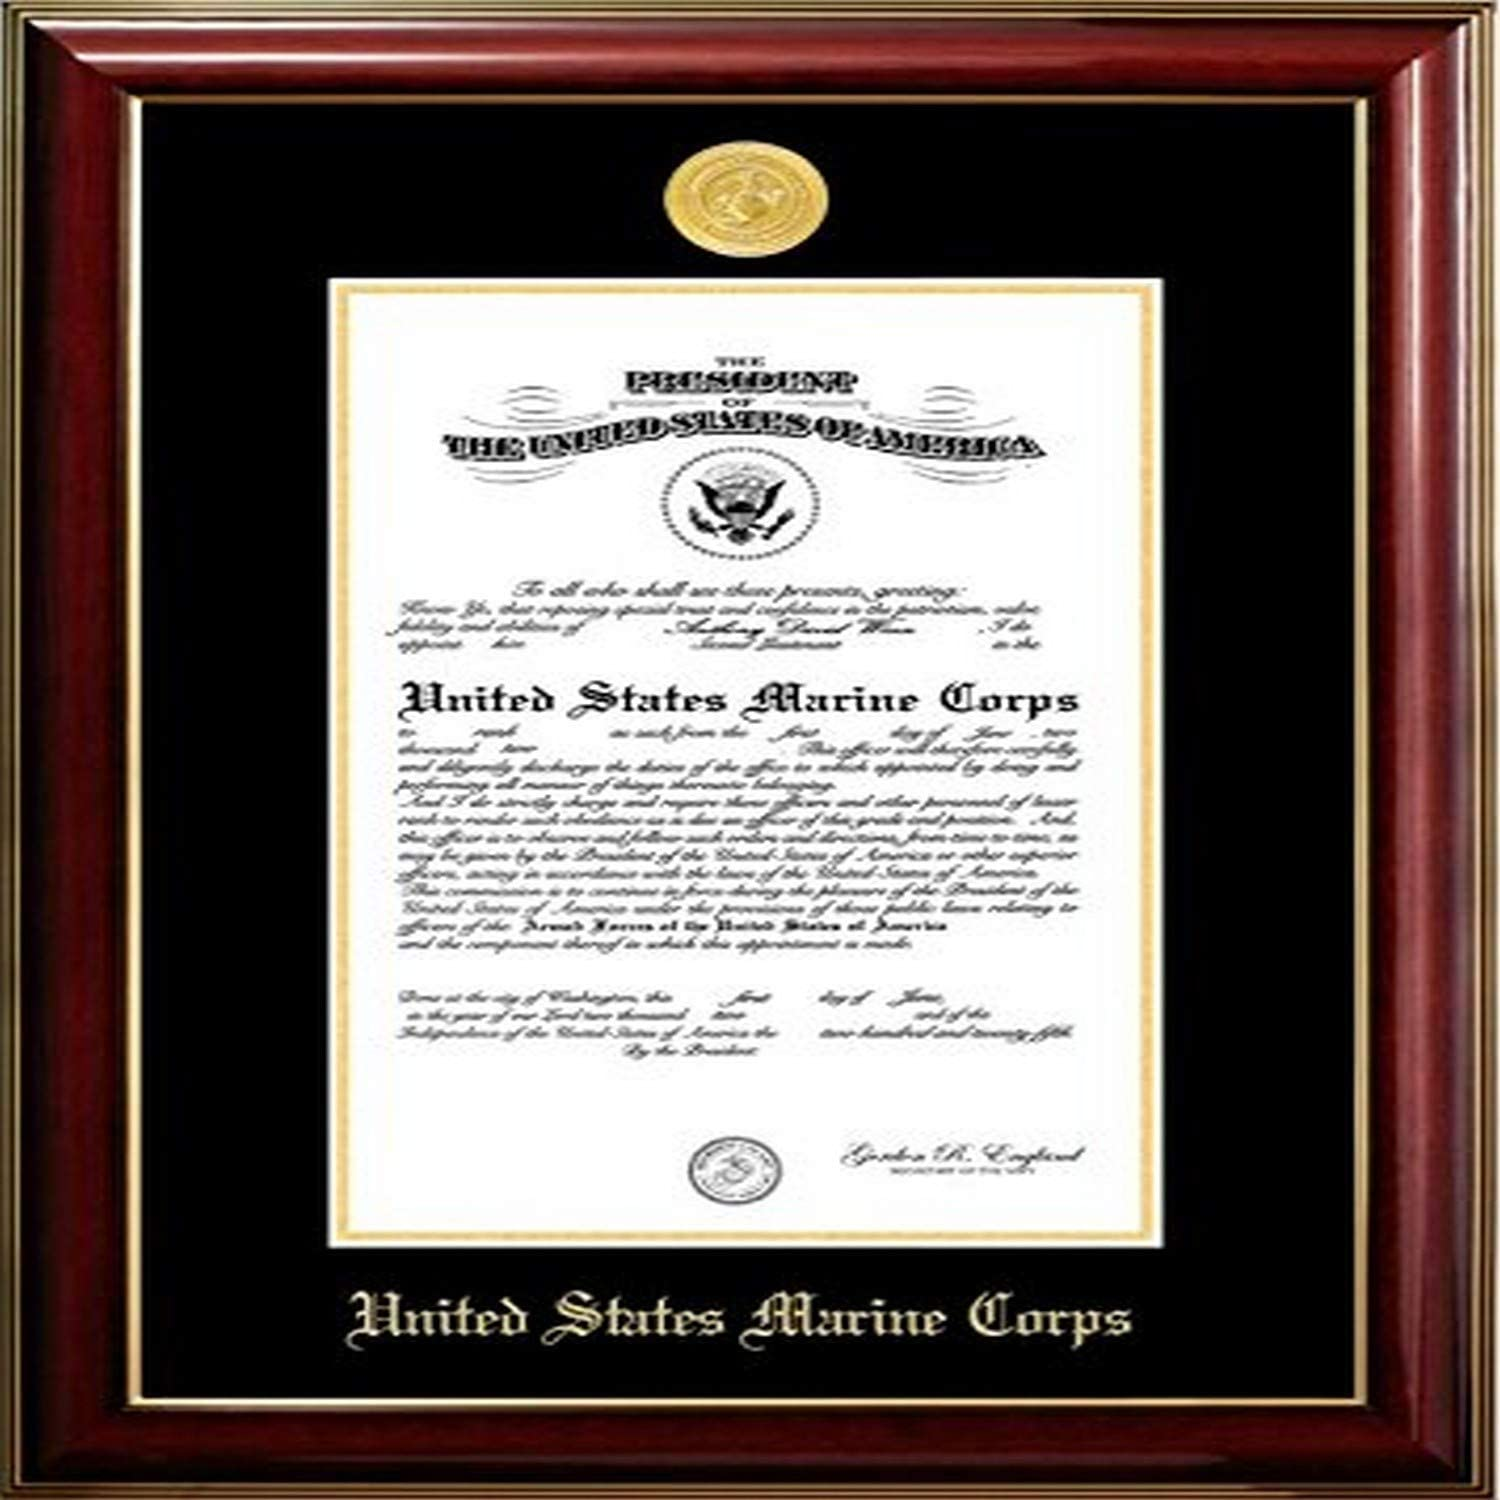 Mahogany 10 x 14 Campus Images MACCL001 Marine Certificate Classic Frame with Gold Medallion